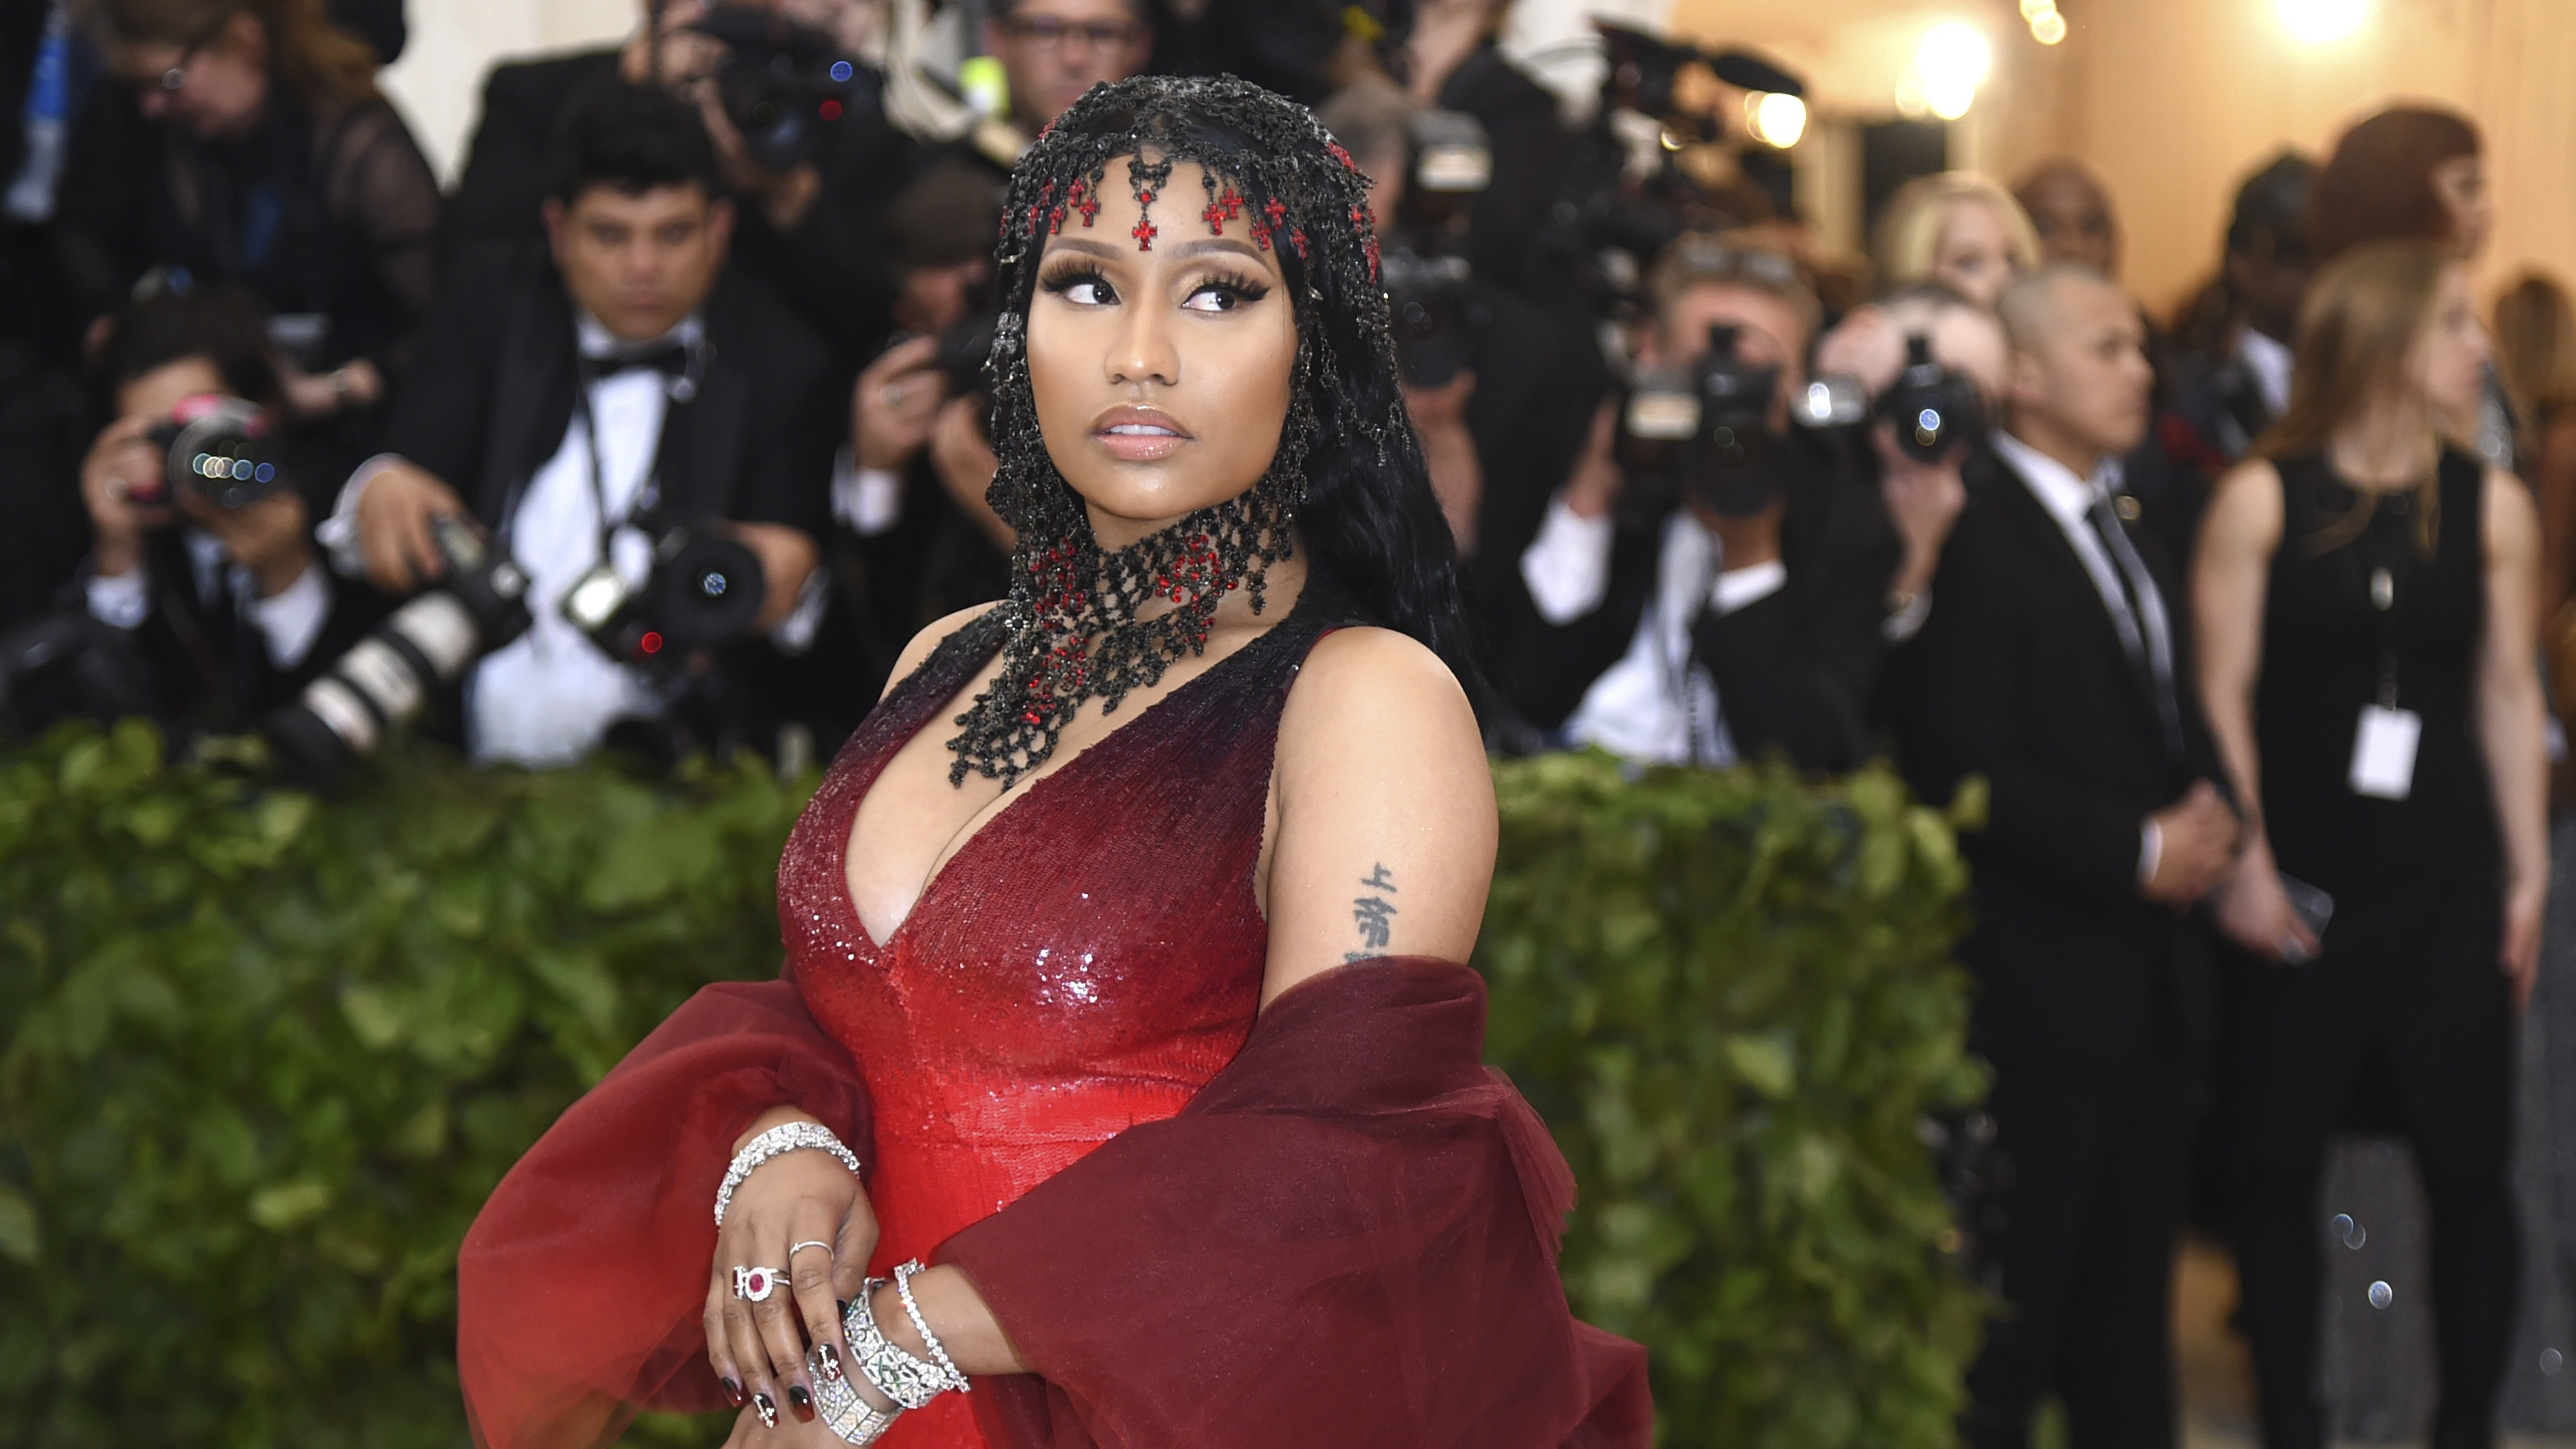 Nicki Minaj Announces New Album 'Queen', Due In June 2018